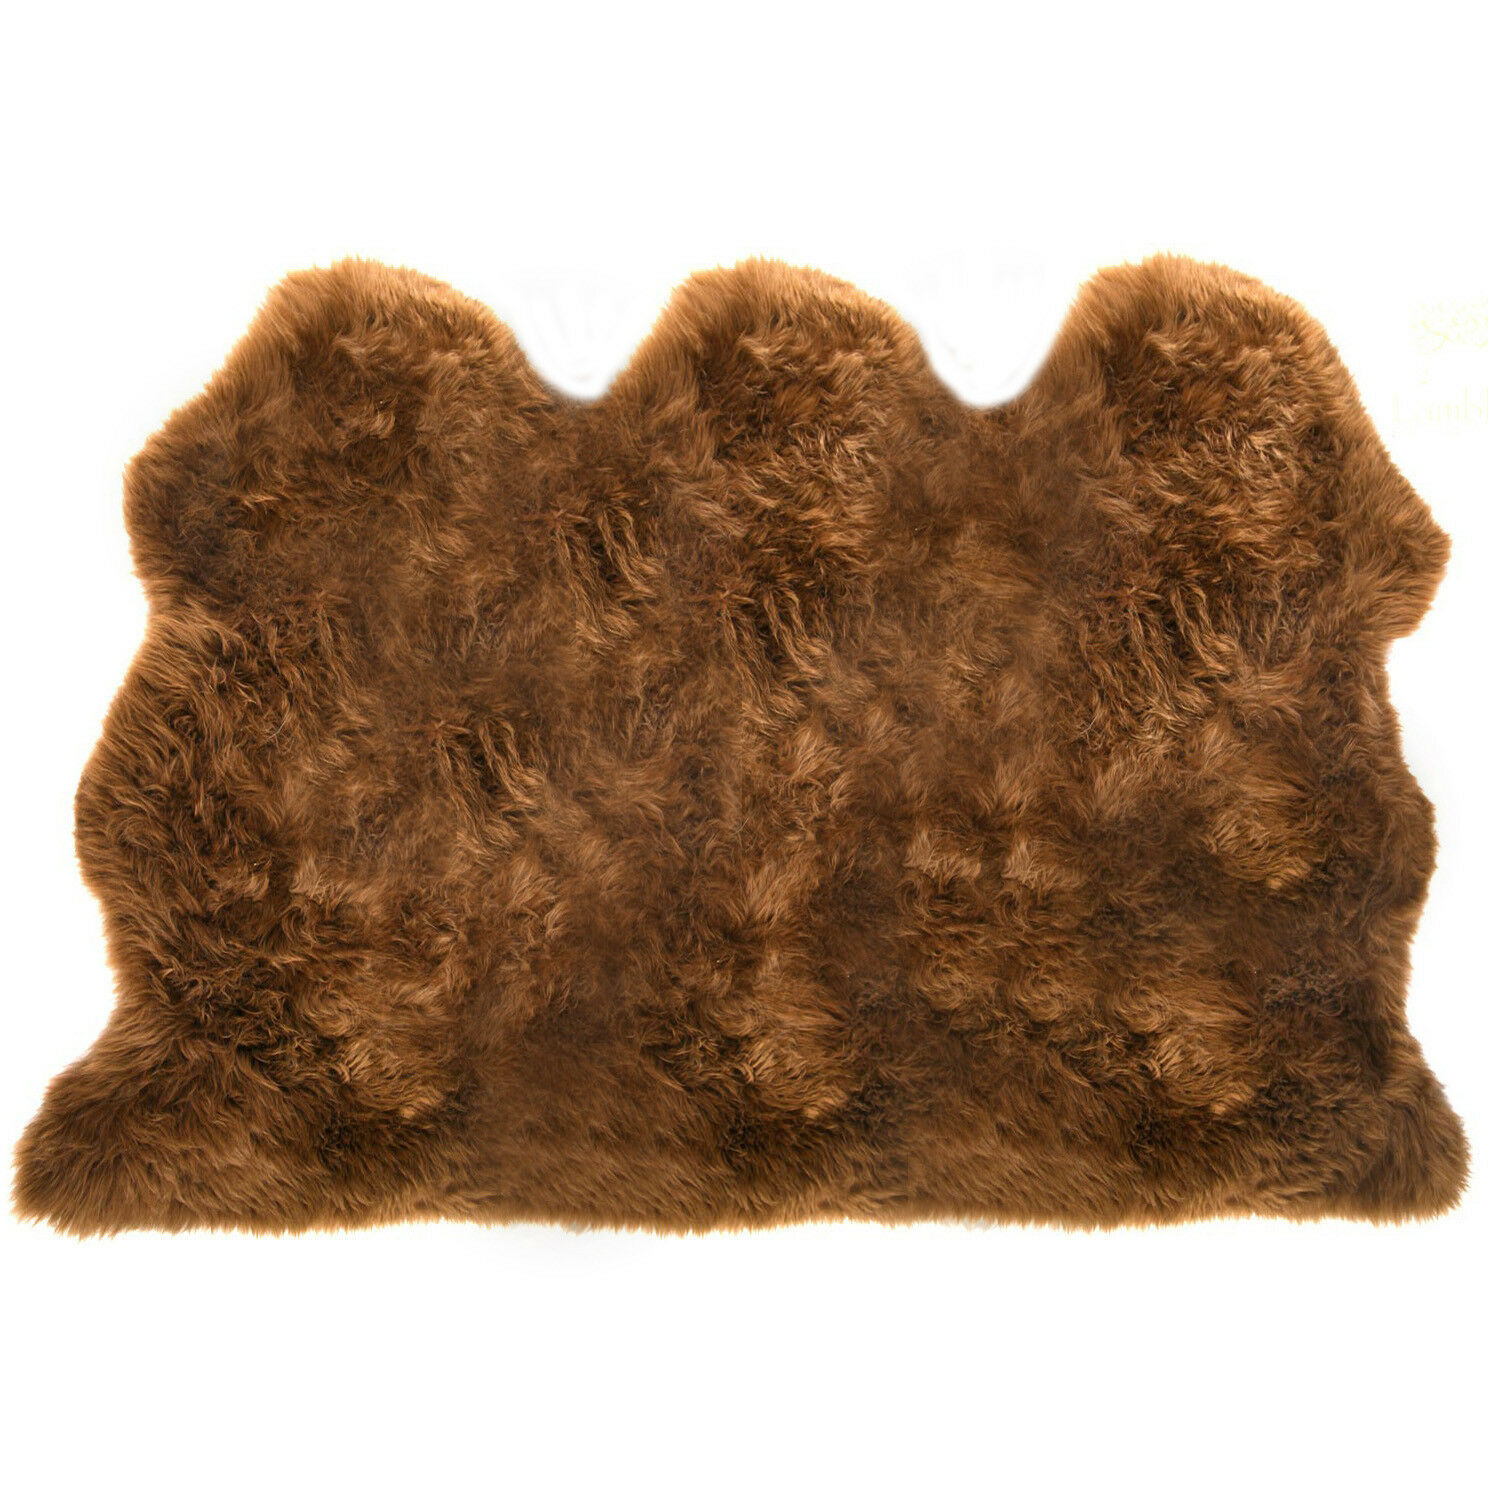 Extra Large Super Soft Triple Genuine UK Made Sheepskin Rug Hide Pelt braun